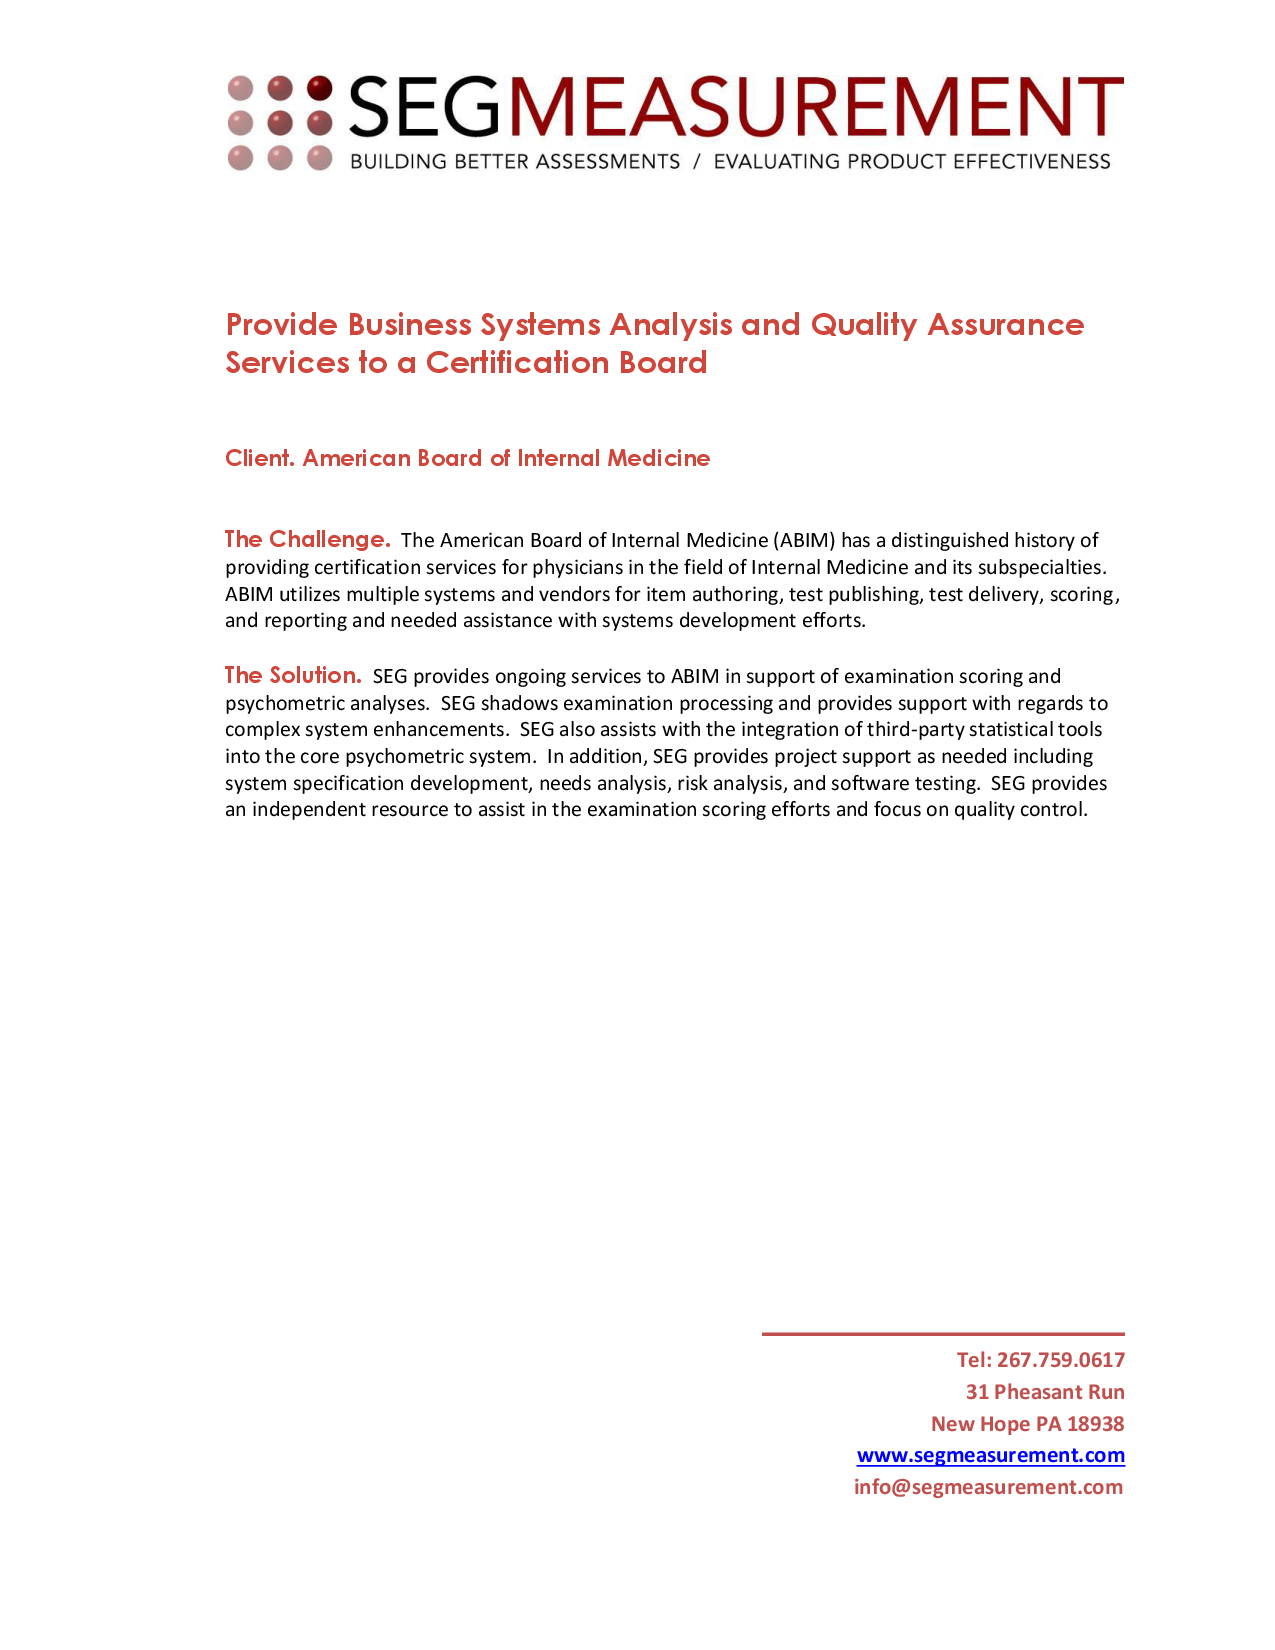 Provide Business Systems Analysis And Quality Assurance Ser